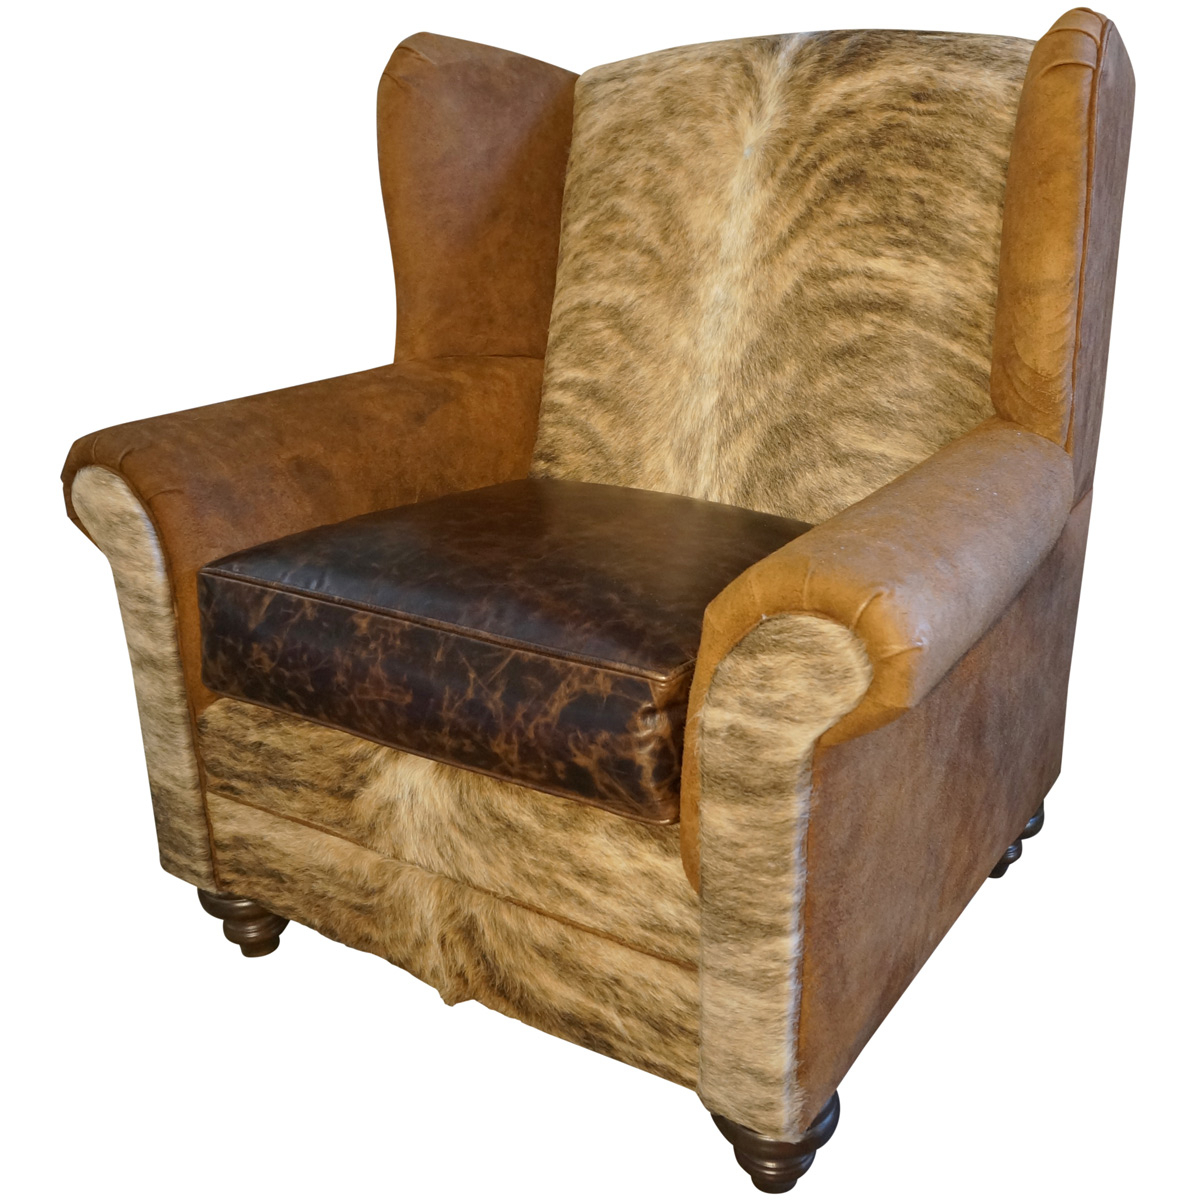 Sweetwater Wingback Chairs Pertaining To Most Up To Date Mountain Home Oversized Wingback Chair (View 10 of 20)